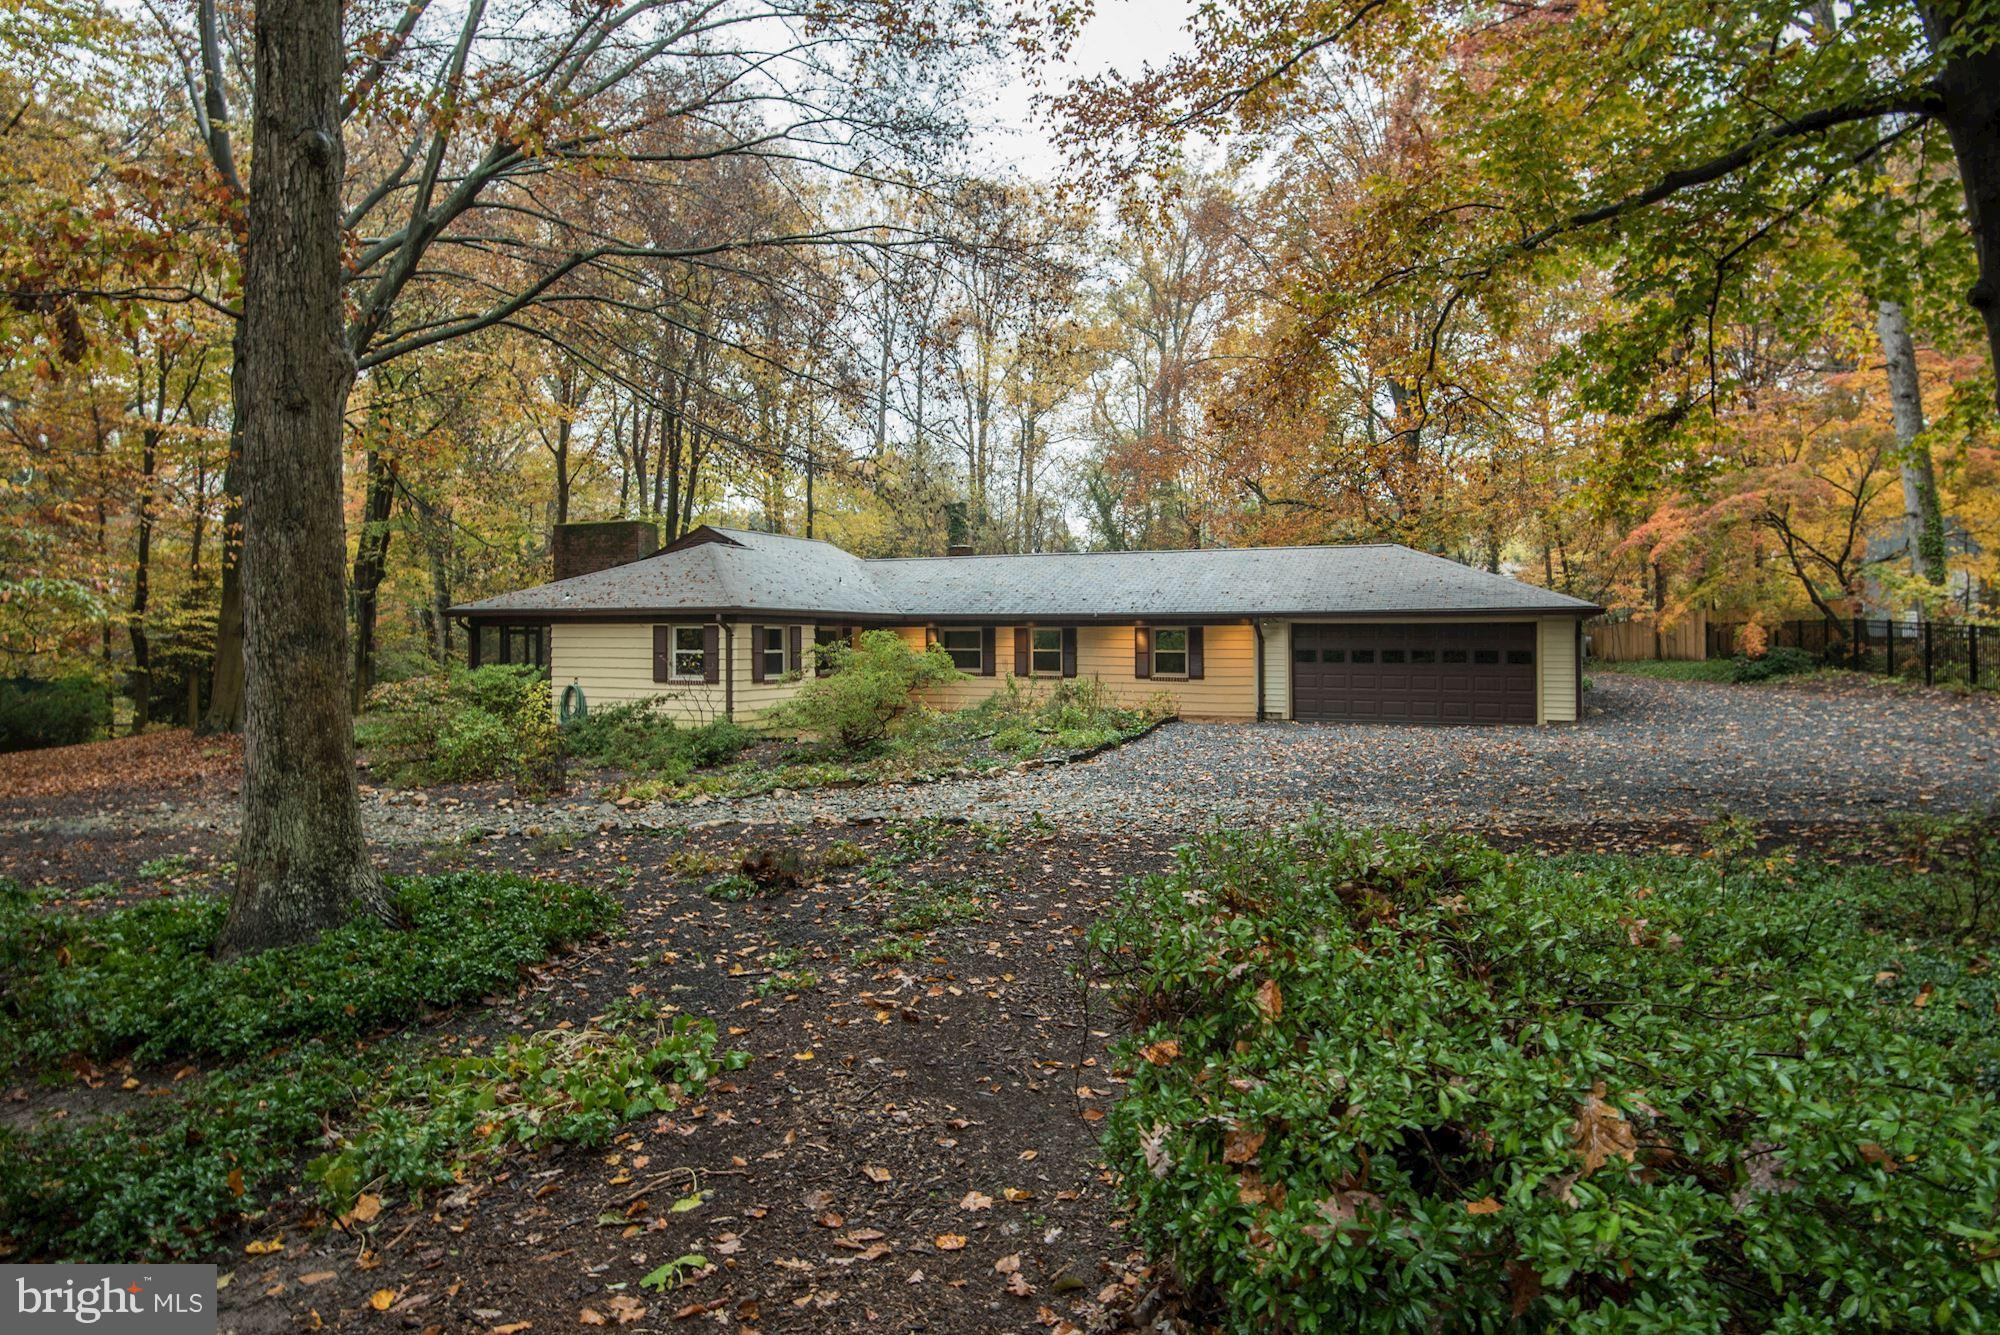 One-level Mid-century modern home on 1 acre lot in wooded wonderland. 4BR 2.5BA w/2 car attached garage PLUS amazing 12 car detached garage. Perfect opportunity for a car lover to tinker away. Formal LR w FP, formal DR, sunny kitchen+Bfast room. Master suite + sitting room w/ 3 more bedrooms + hall bath on separate wing. 2 screened porches. Easy access to commuter routes. OPEN SUN 2-4!